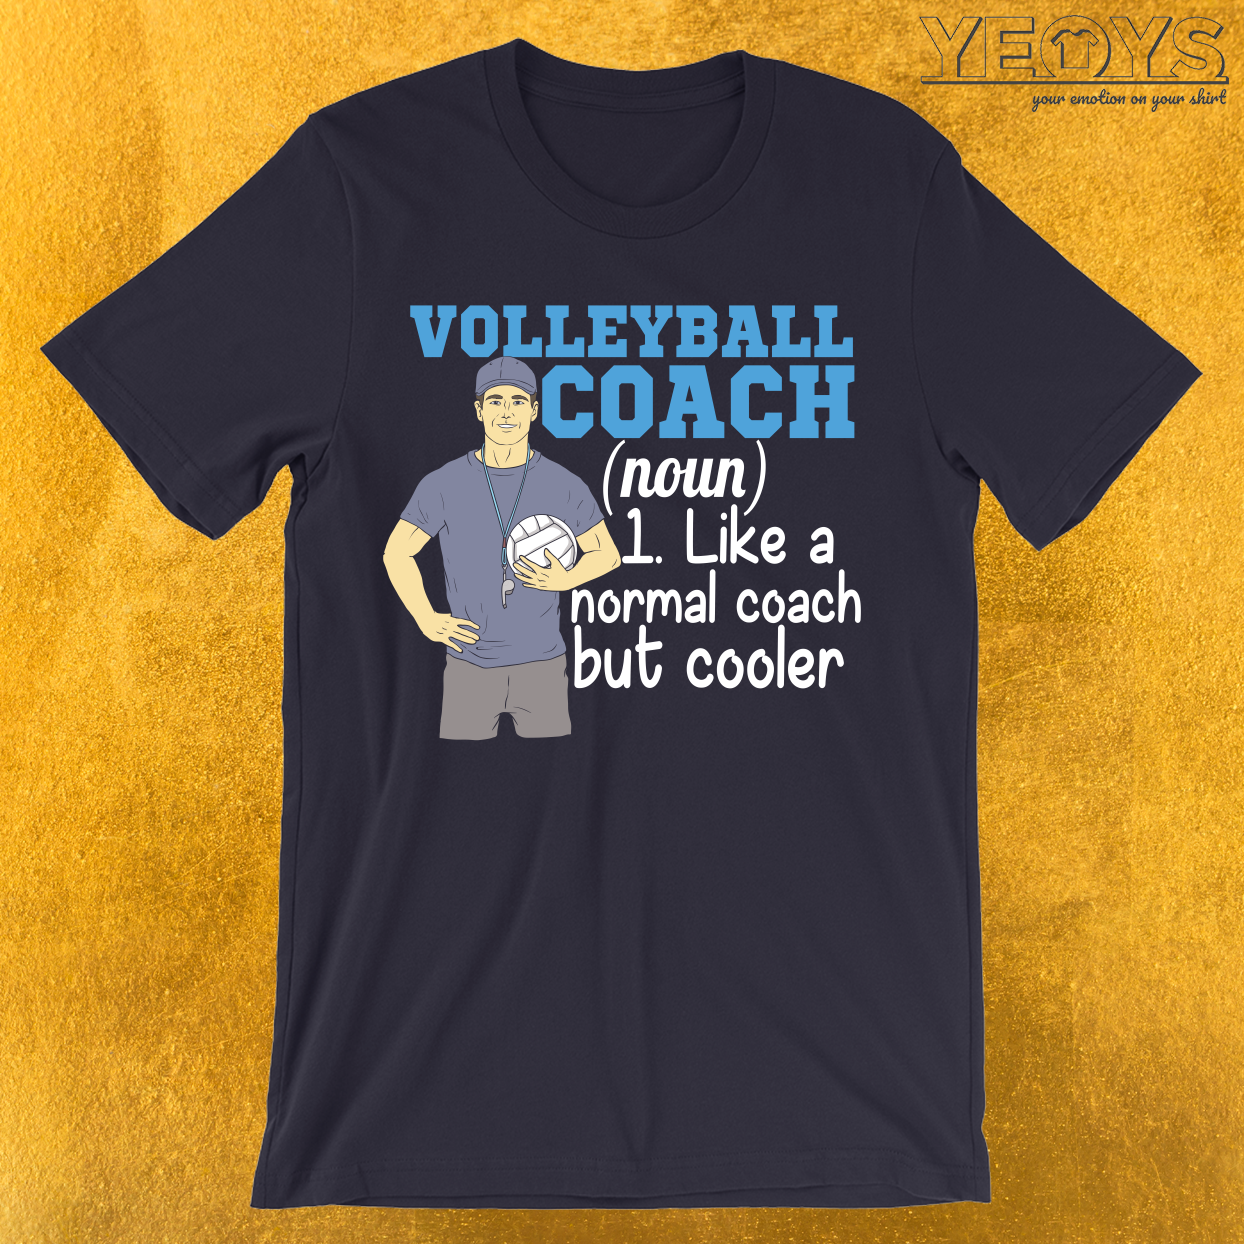 Volleyball Coach Like Normal But Cooler T-Shirt